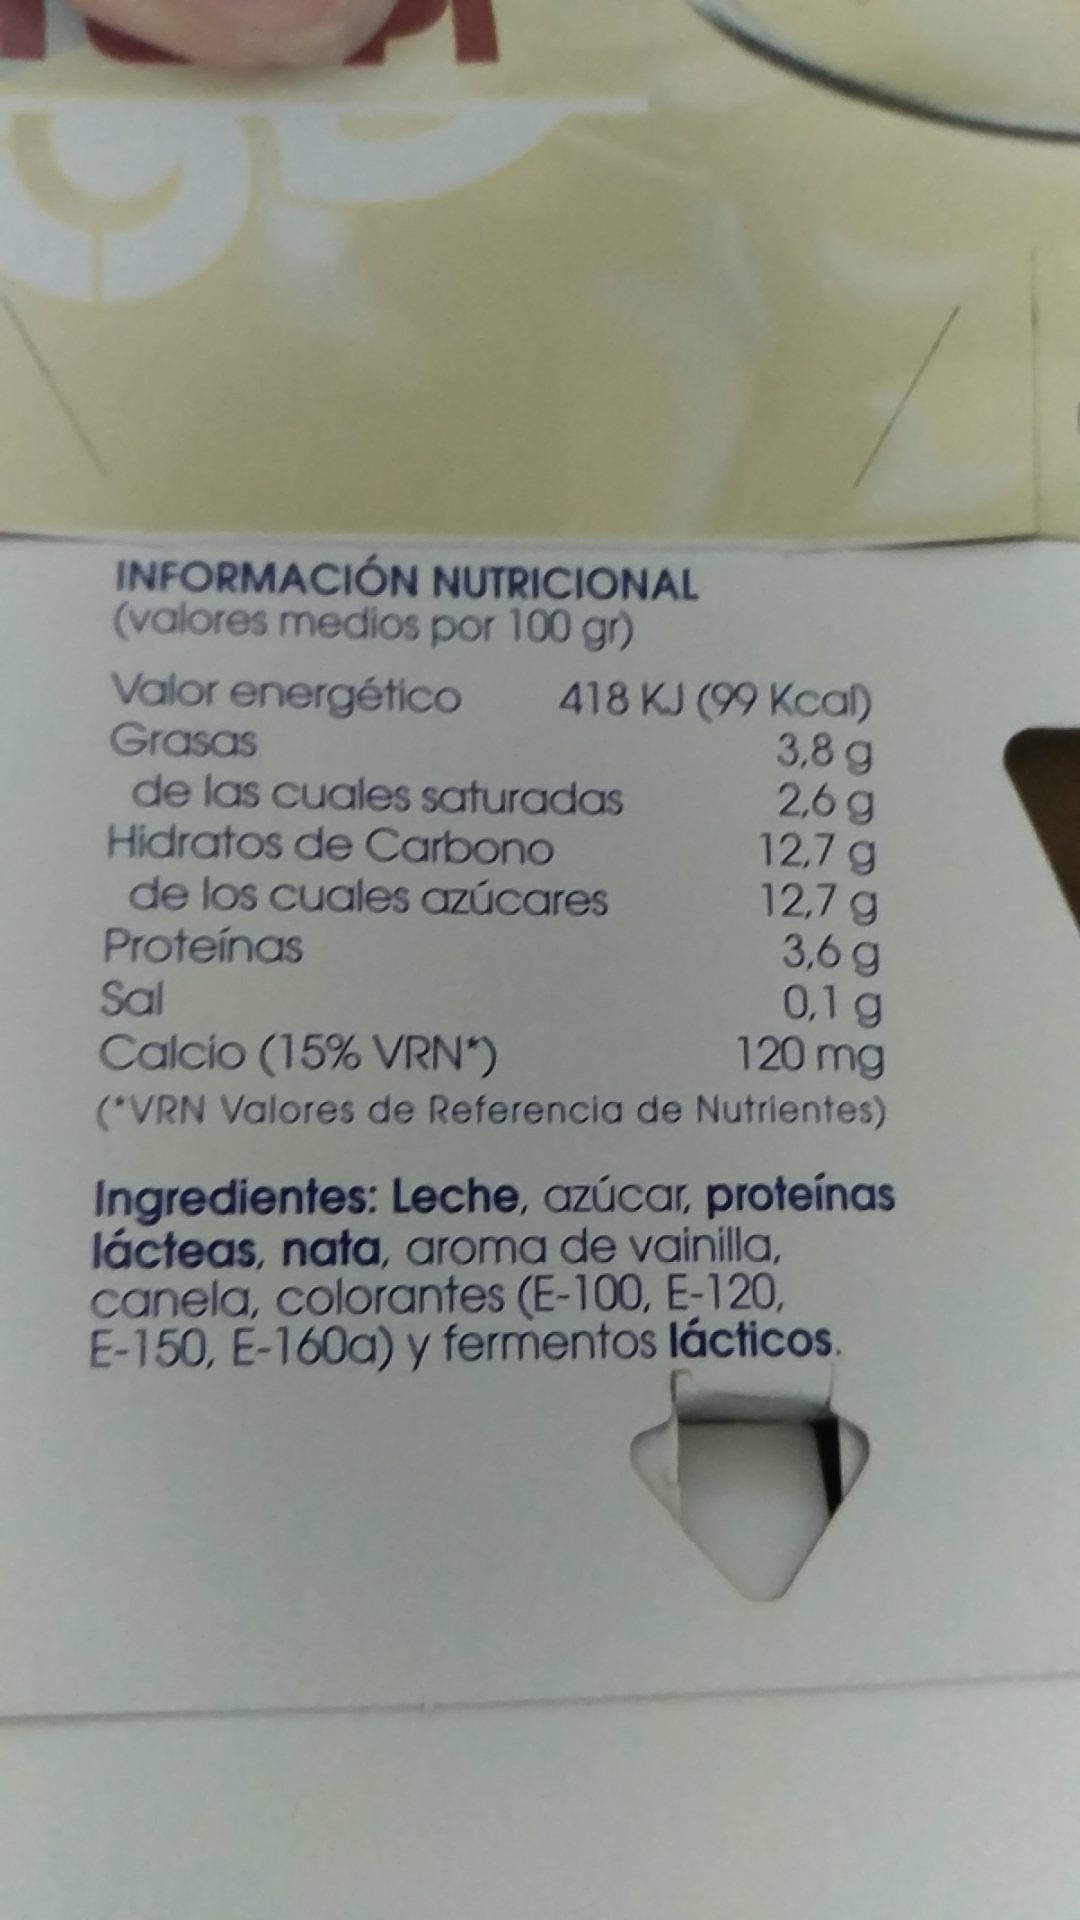 Yogur sabor vainilla - Ingredients - en